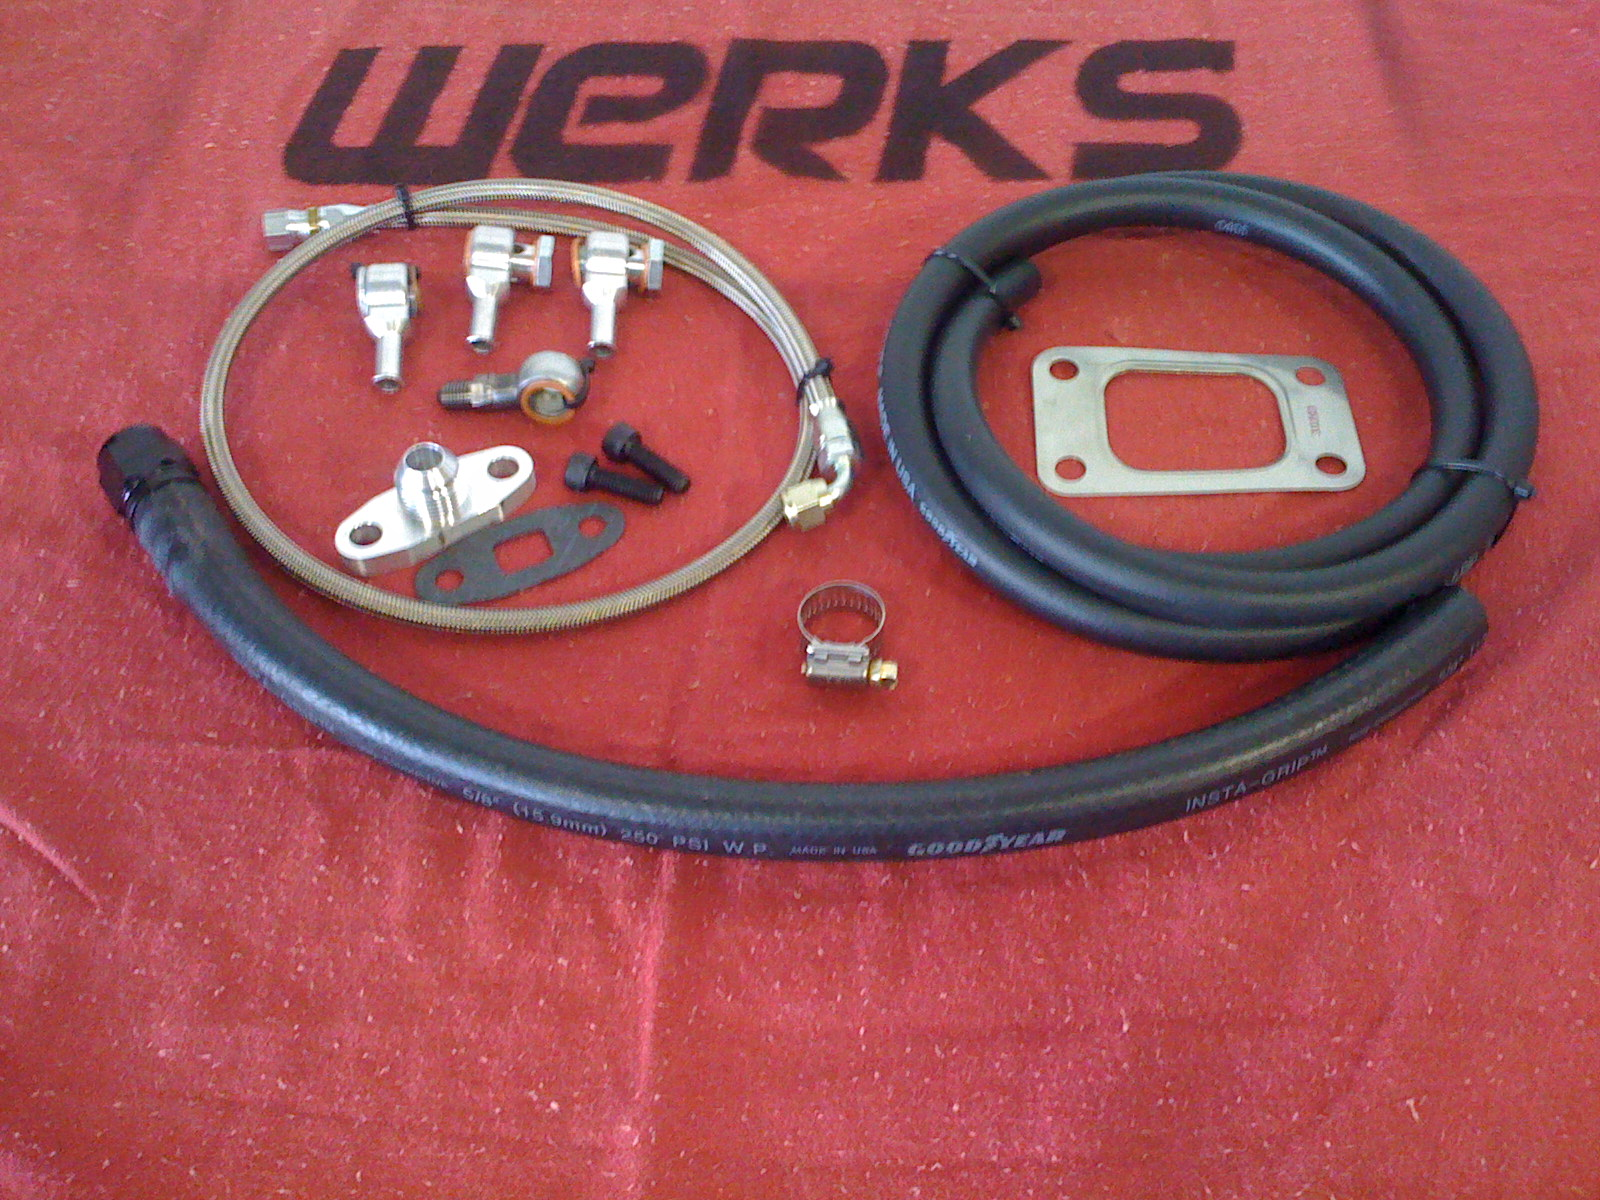 WERKS 2.0T turbo Installation Kit